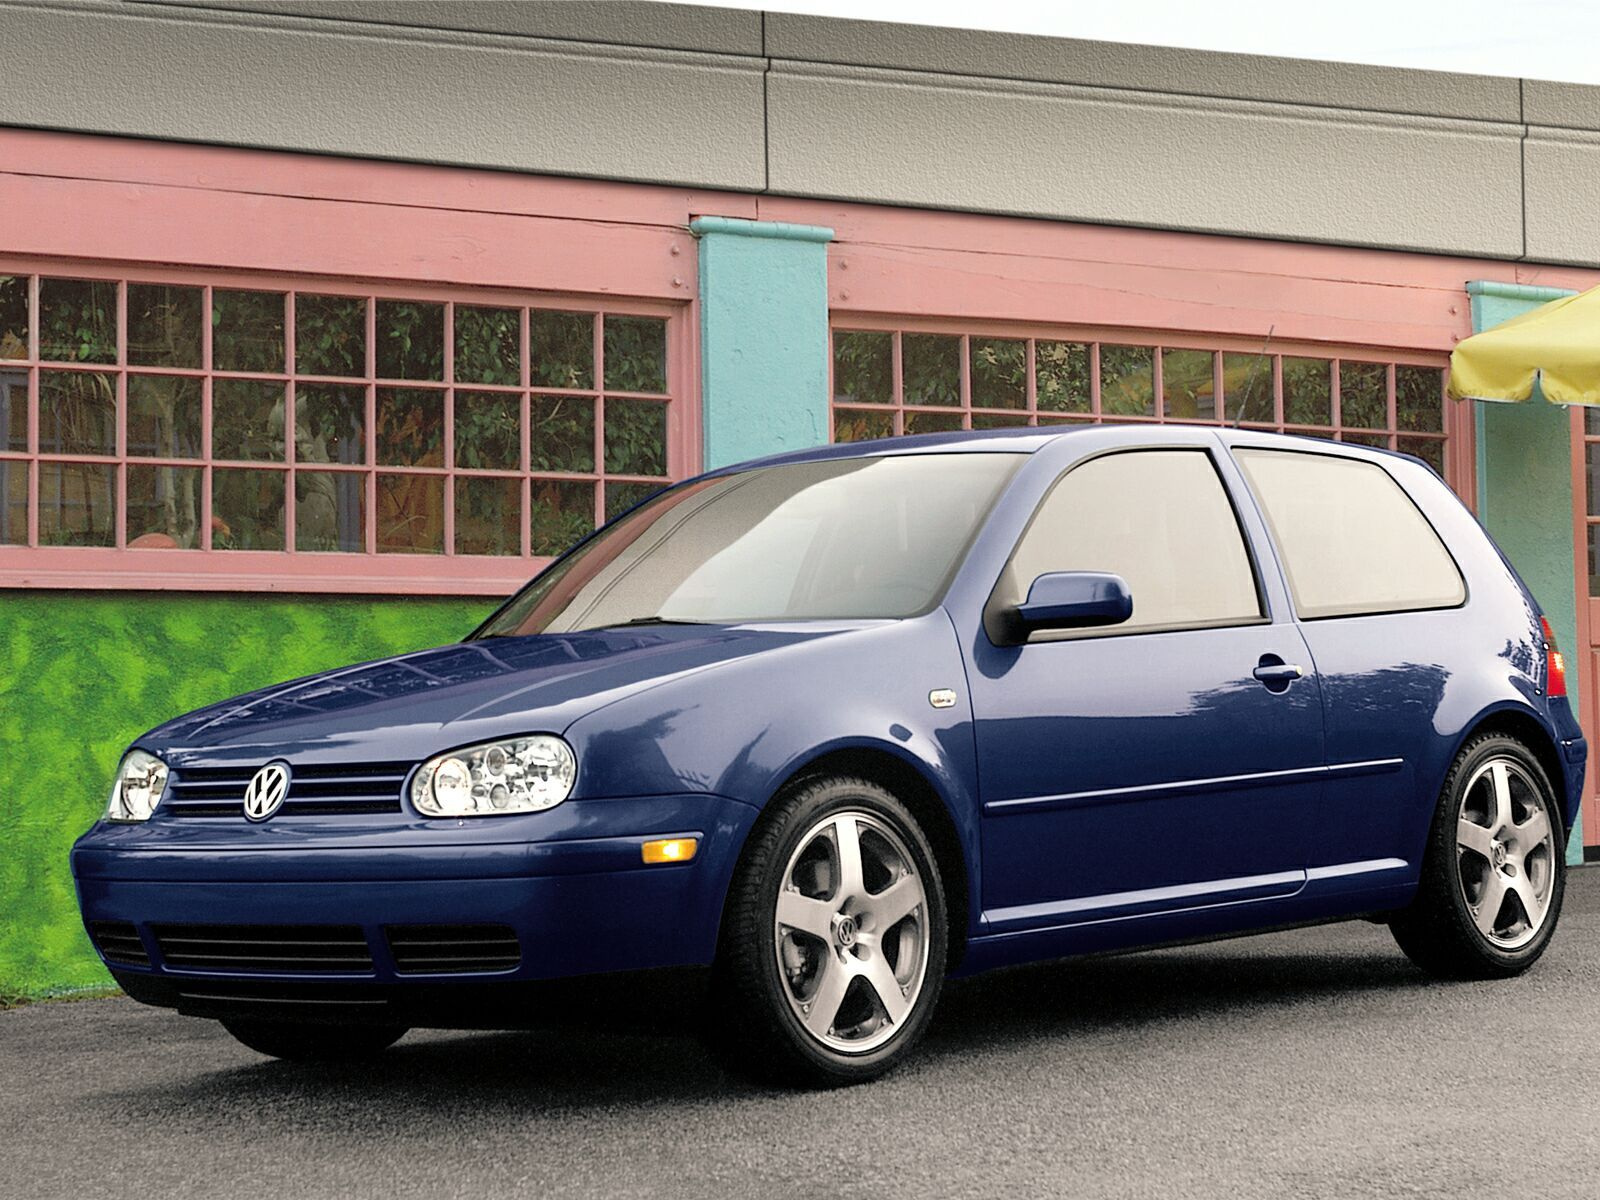 volkswagen golf iv photos news reviews specs car listings. Black Bedroom Furniture Sets. Home Design Ideas